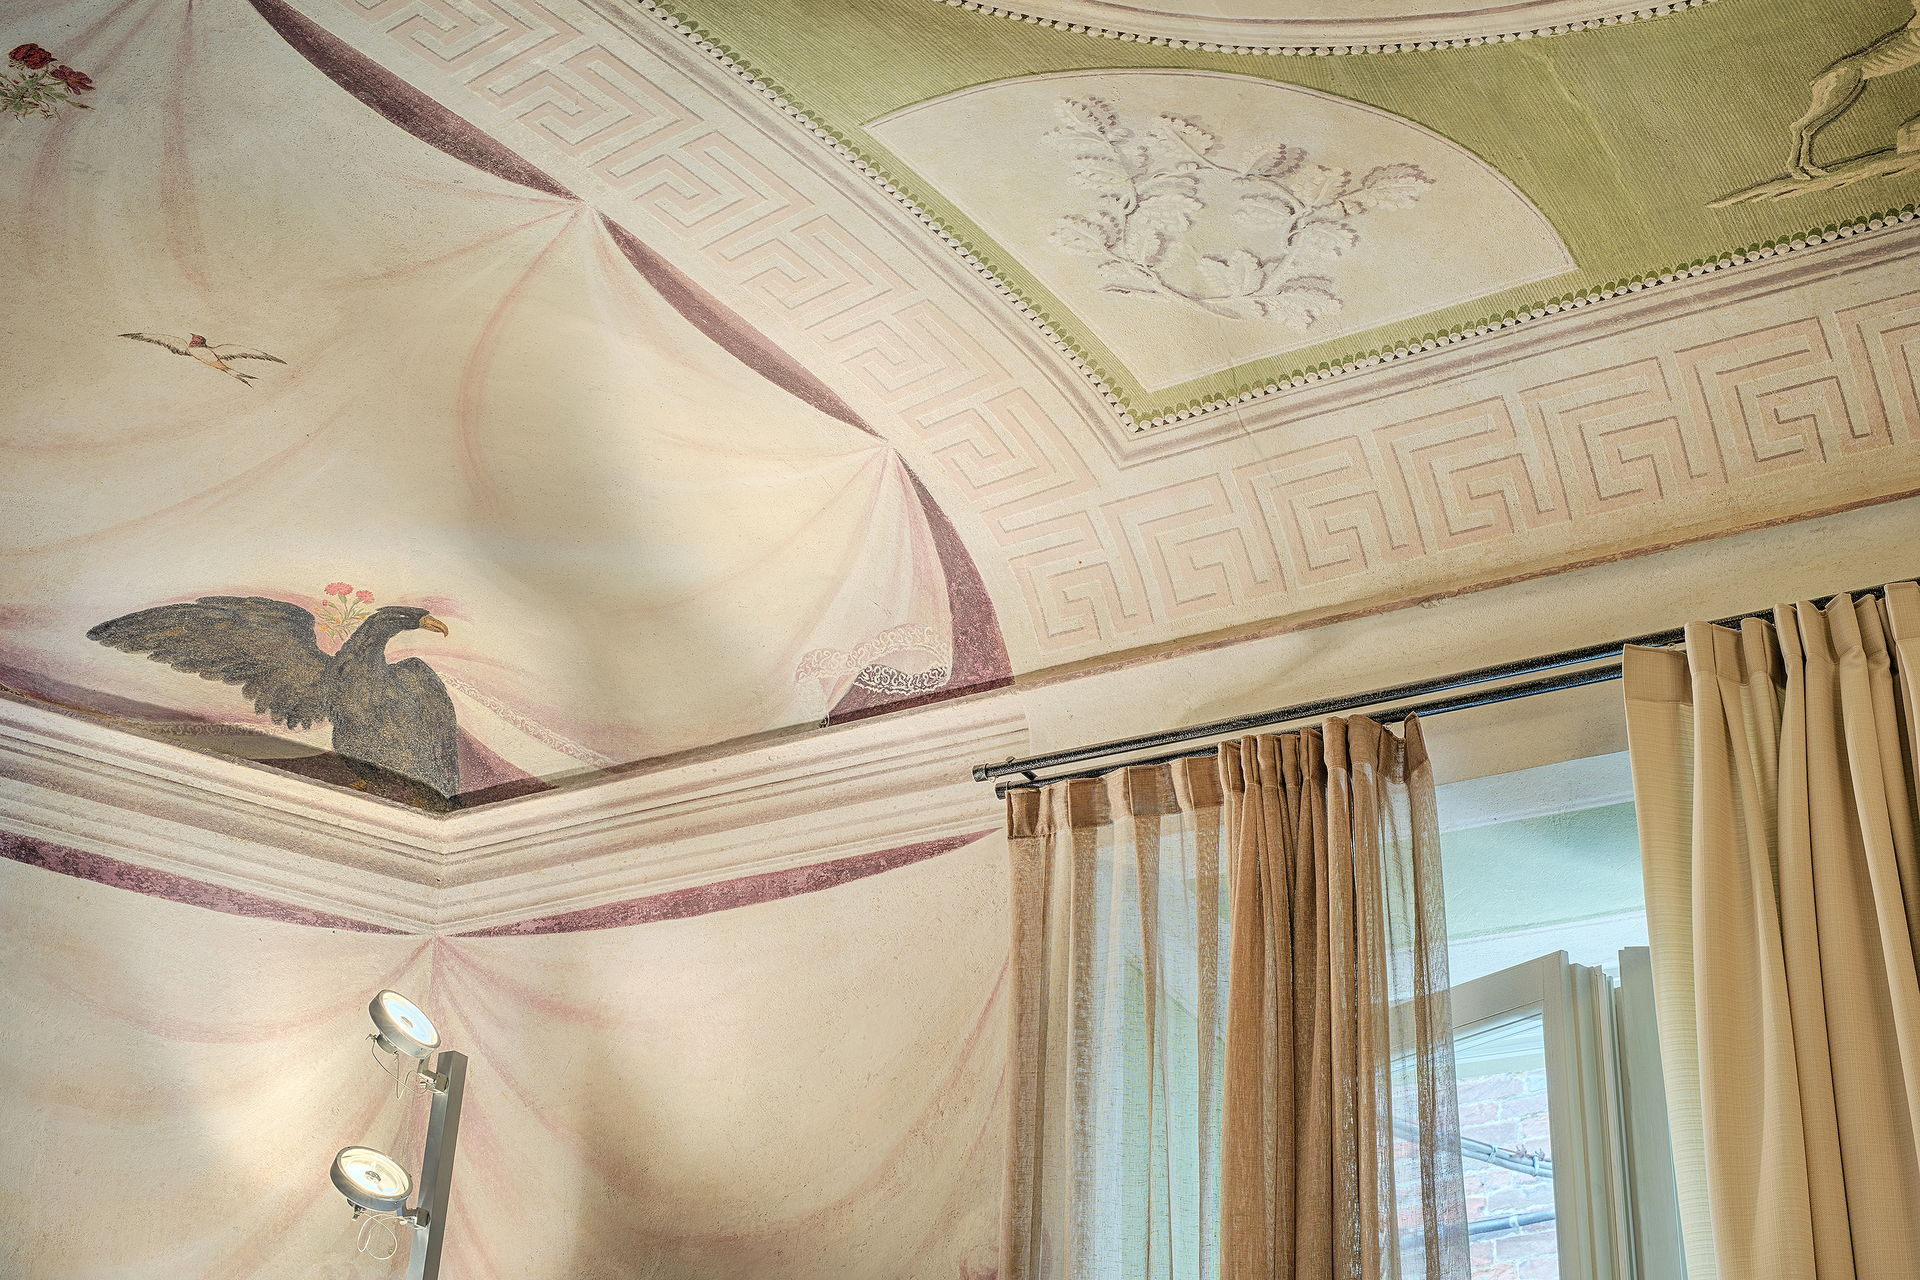 Residenza d'epoca Le Aquile - Bed and Breakfast luxury nel centro di Siena 6